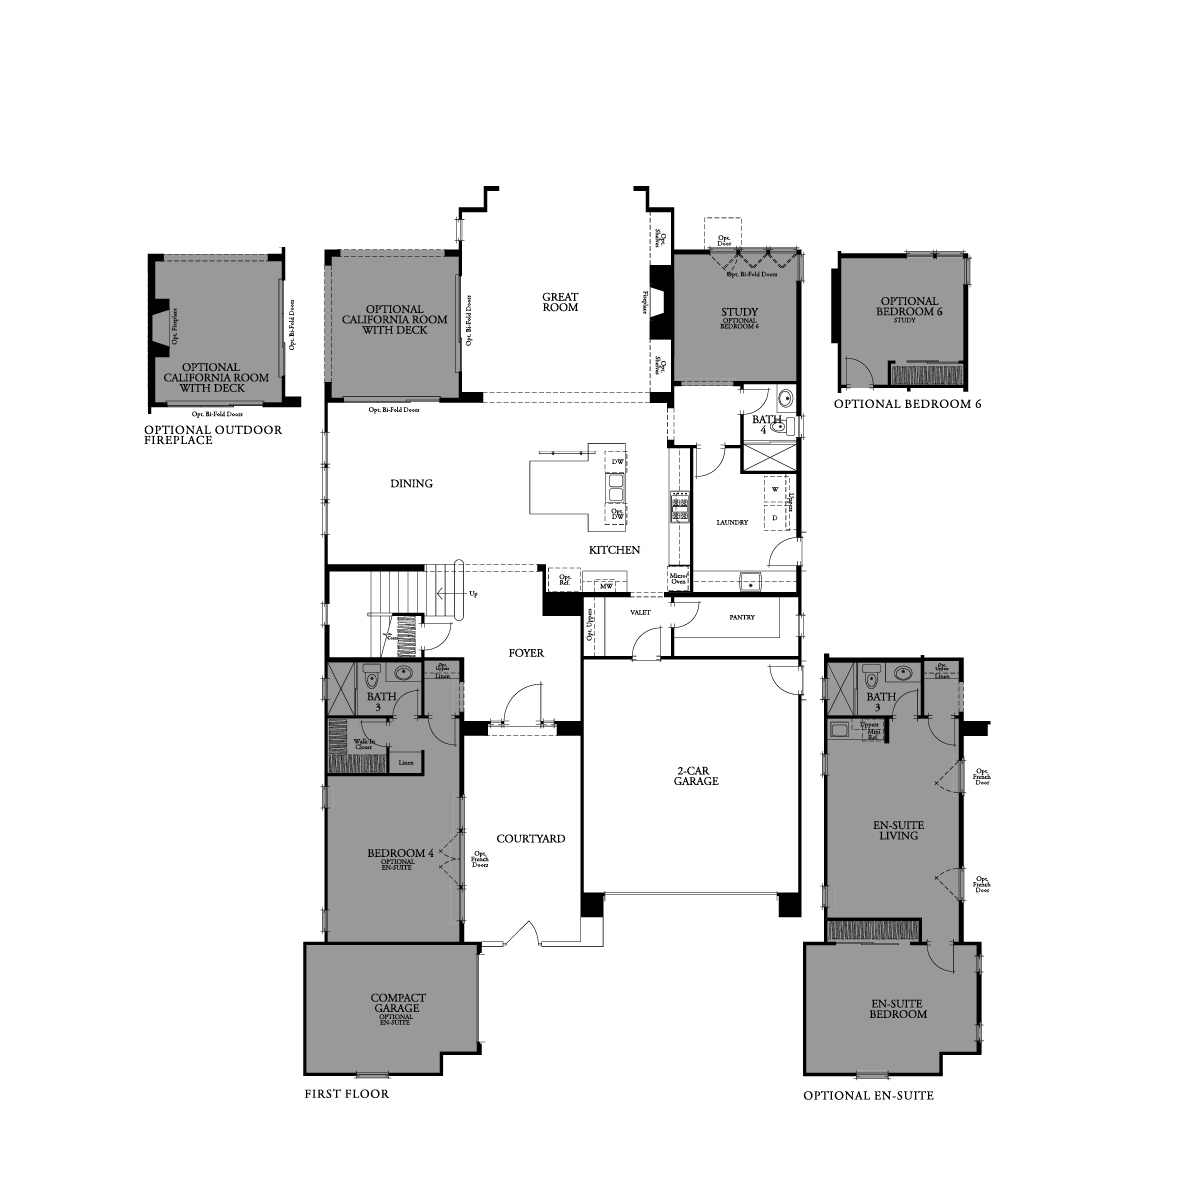 First floor residence 6 floor plan | Crown Point at Stonebrae in Hayward, CA | Brookfield Residential